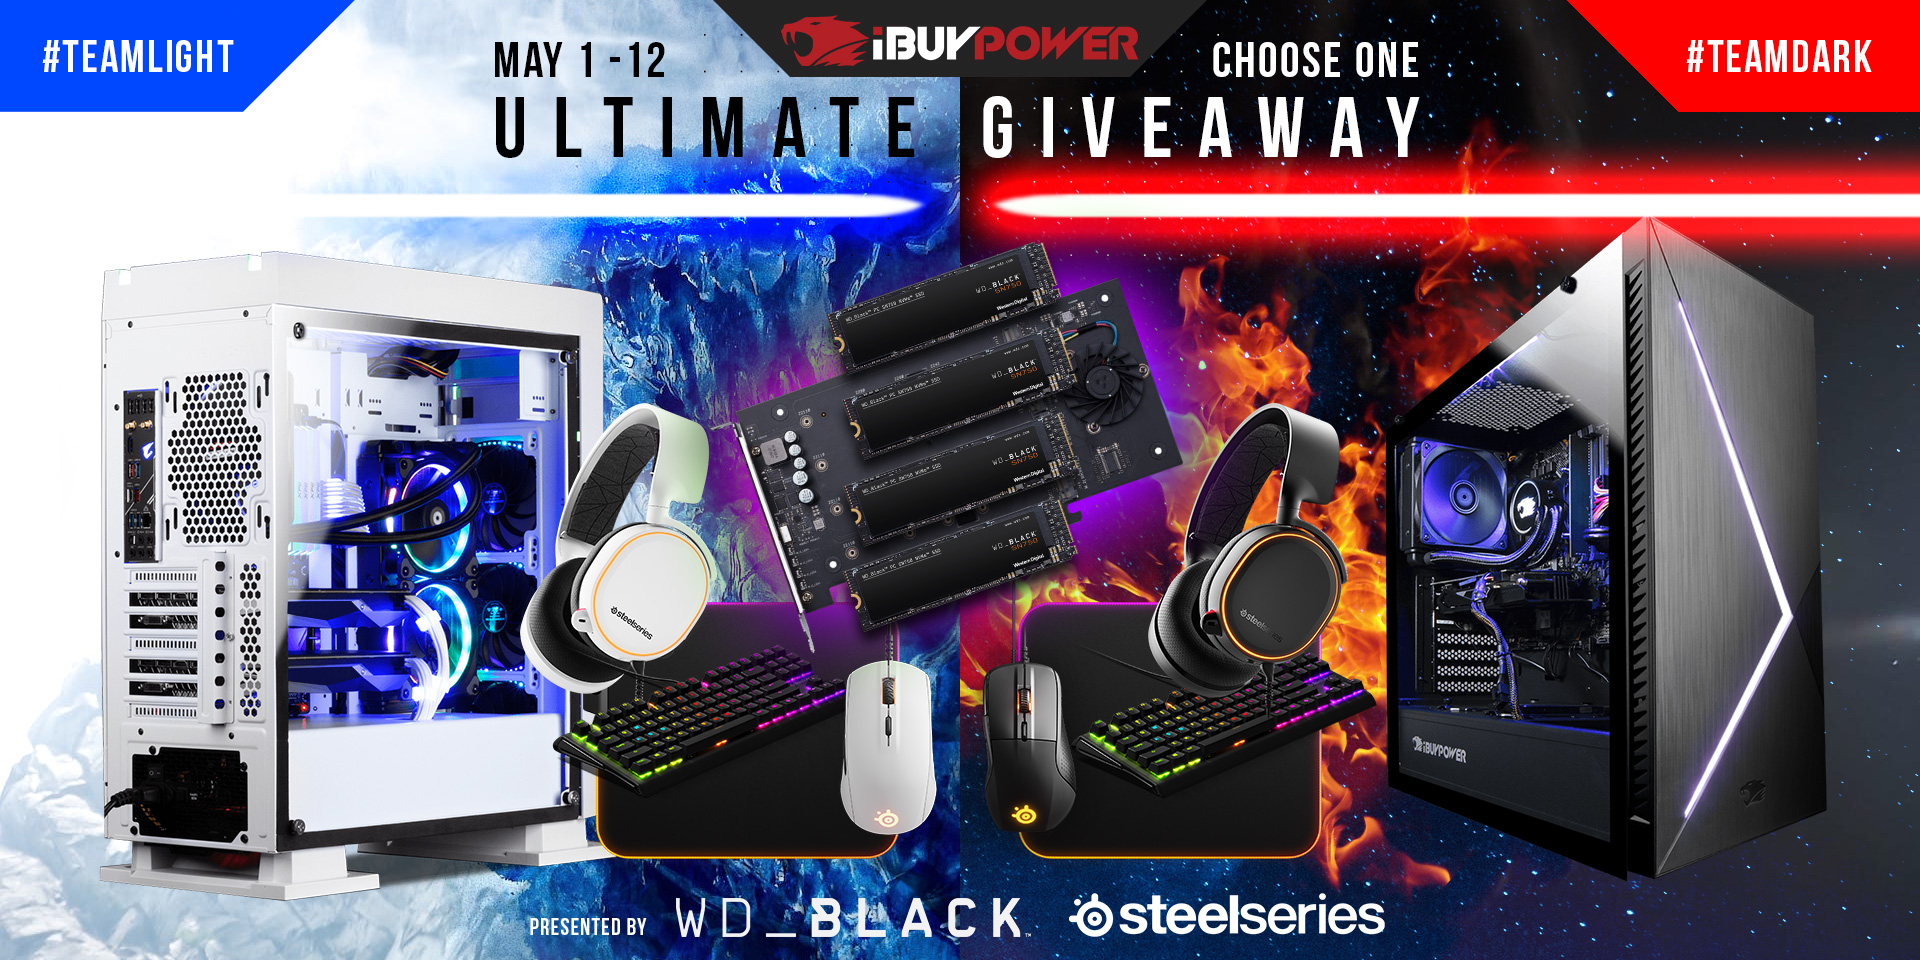 da520c7802ee7 WD Black and iBUYPOWER Ultimate Giveaway image